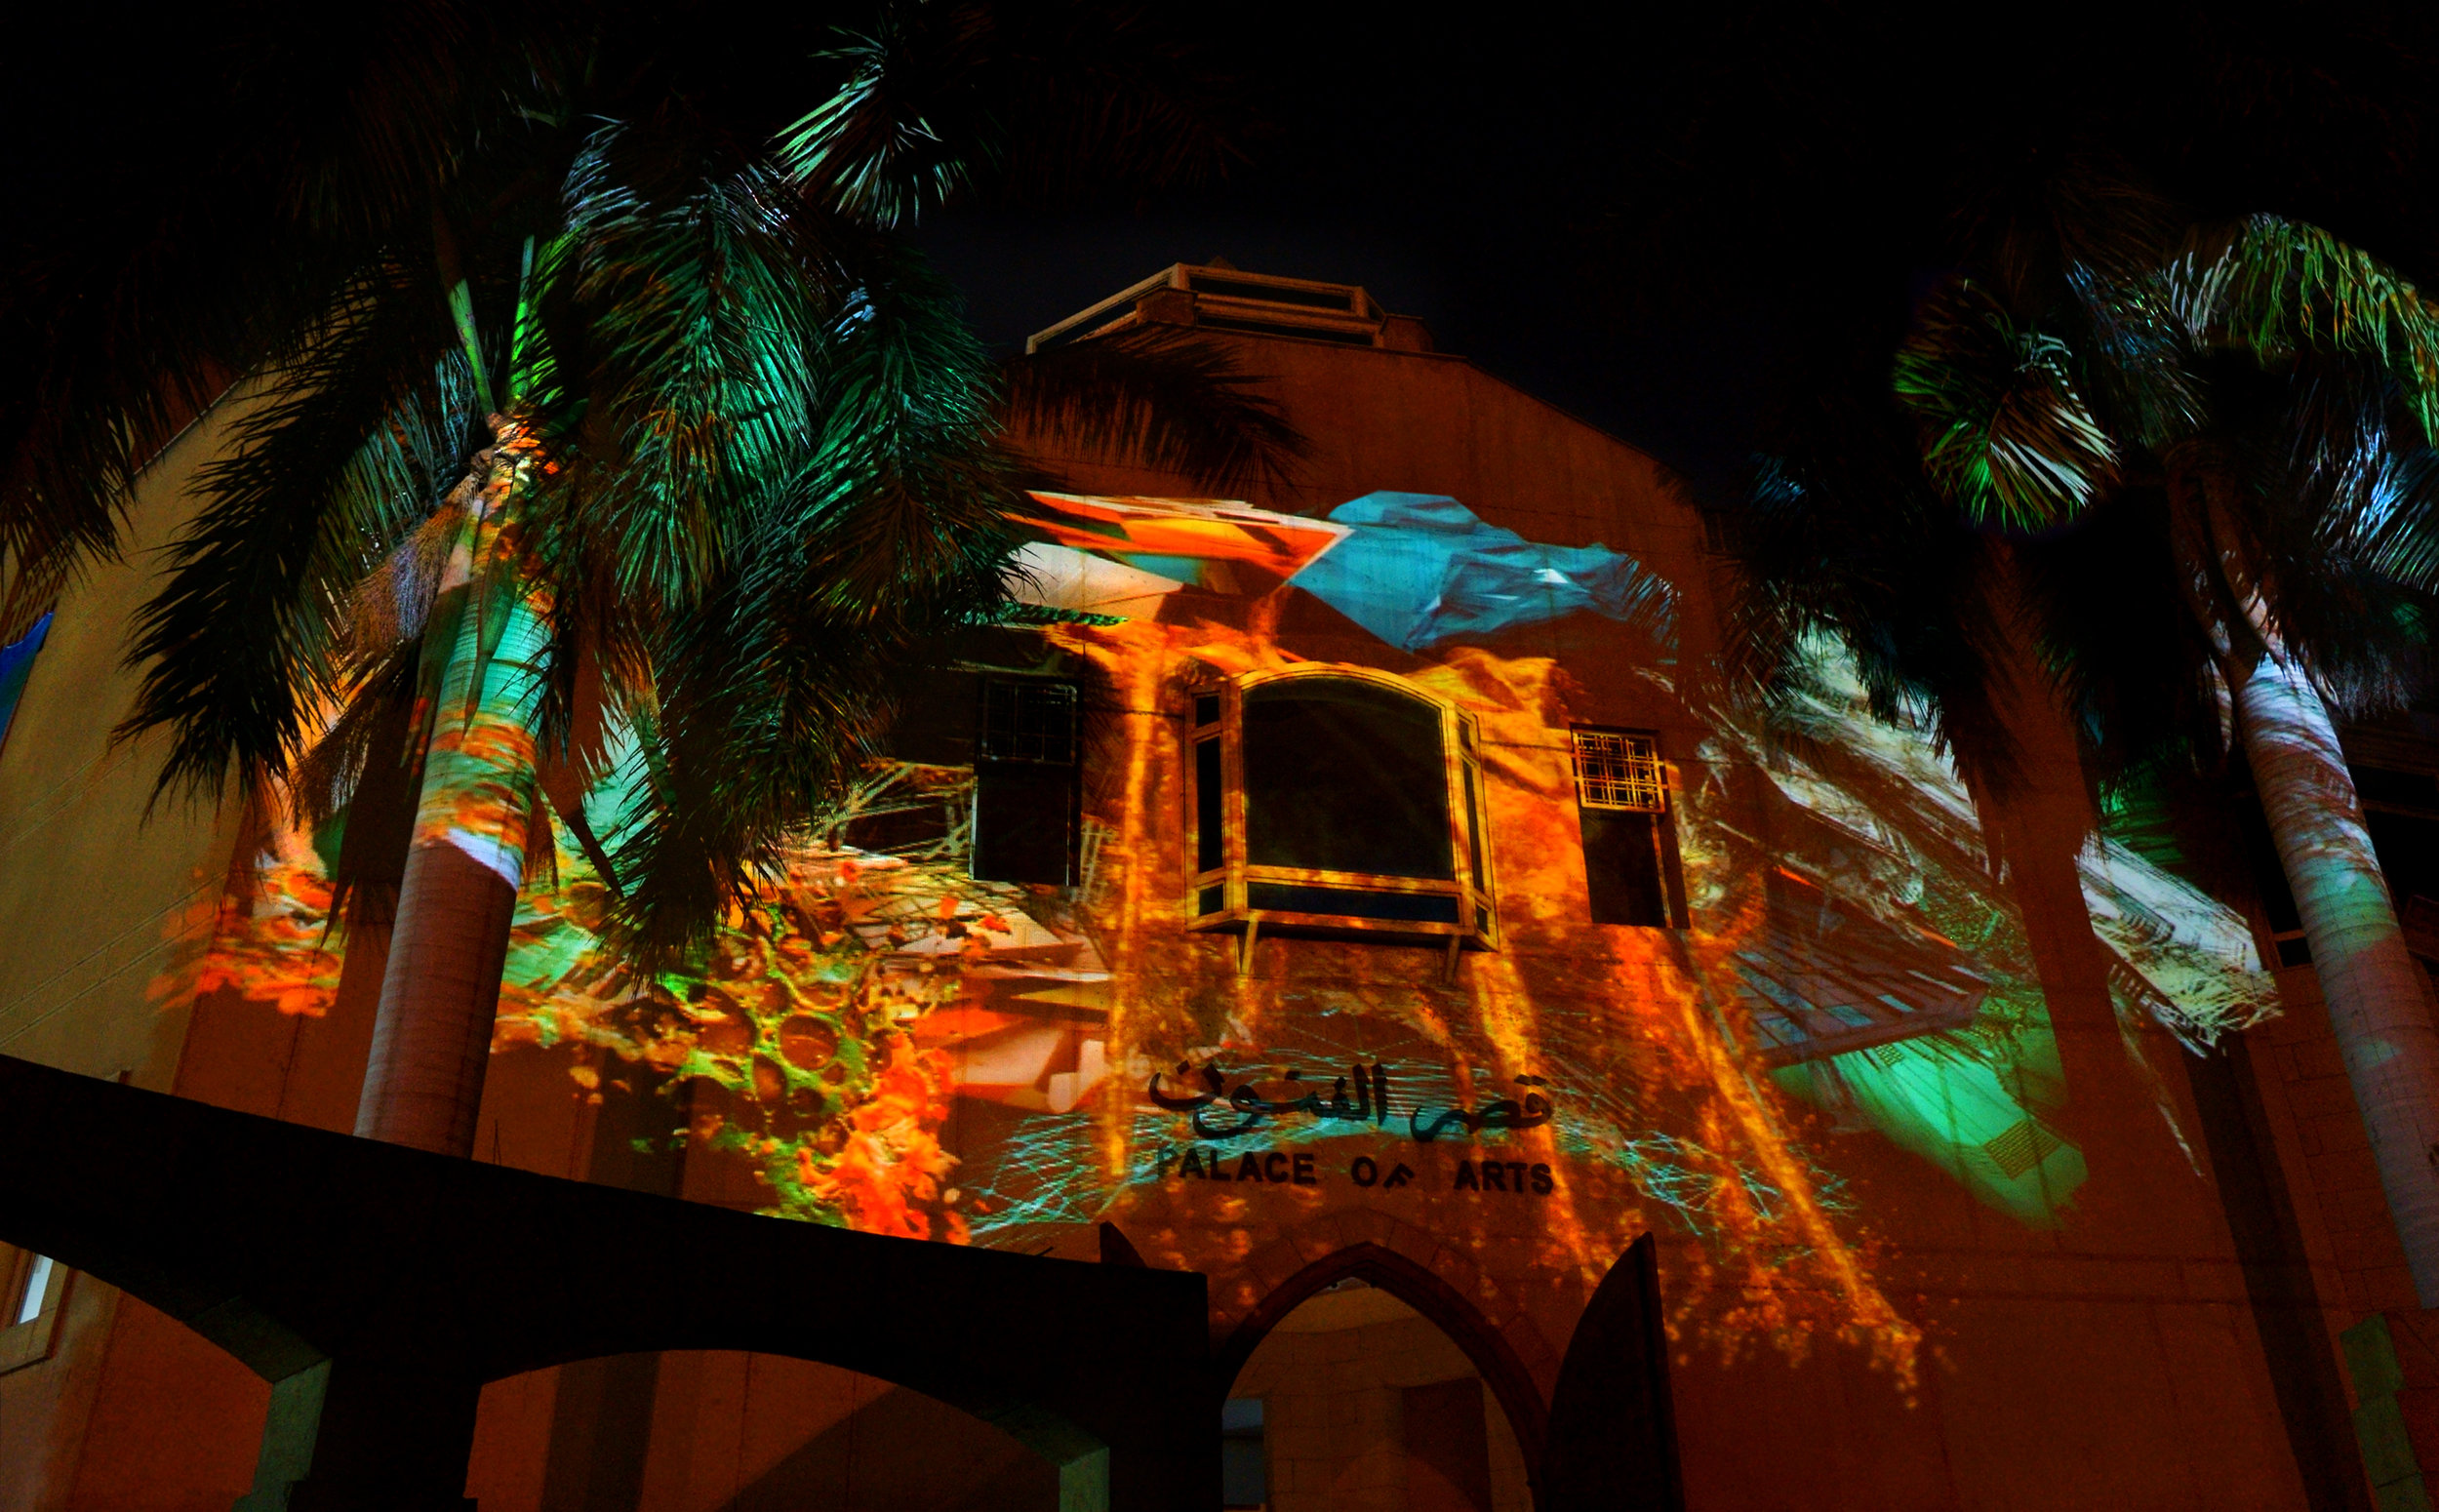 Cairotronica Projection 3 D Doty.jpg